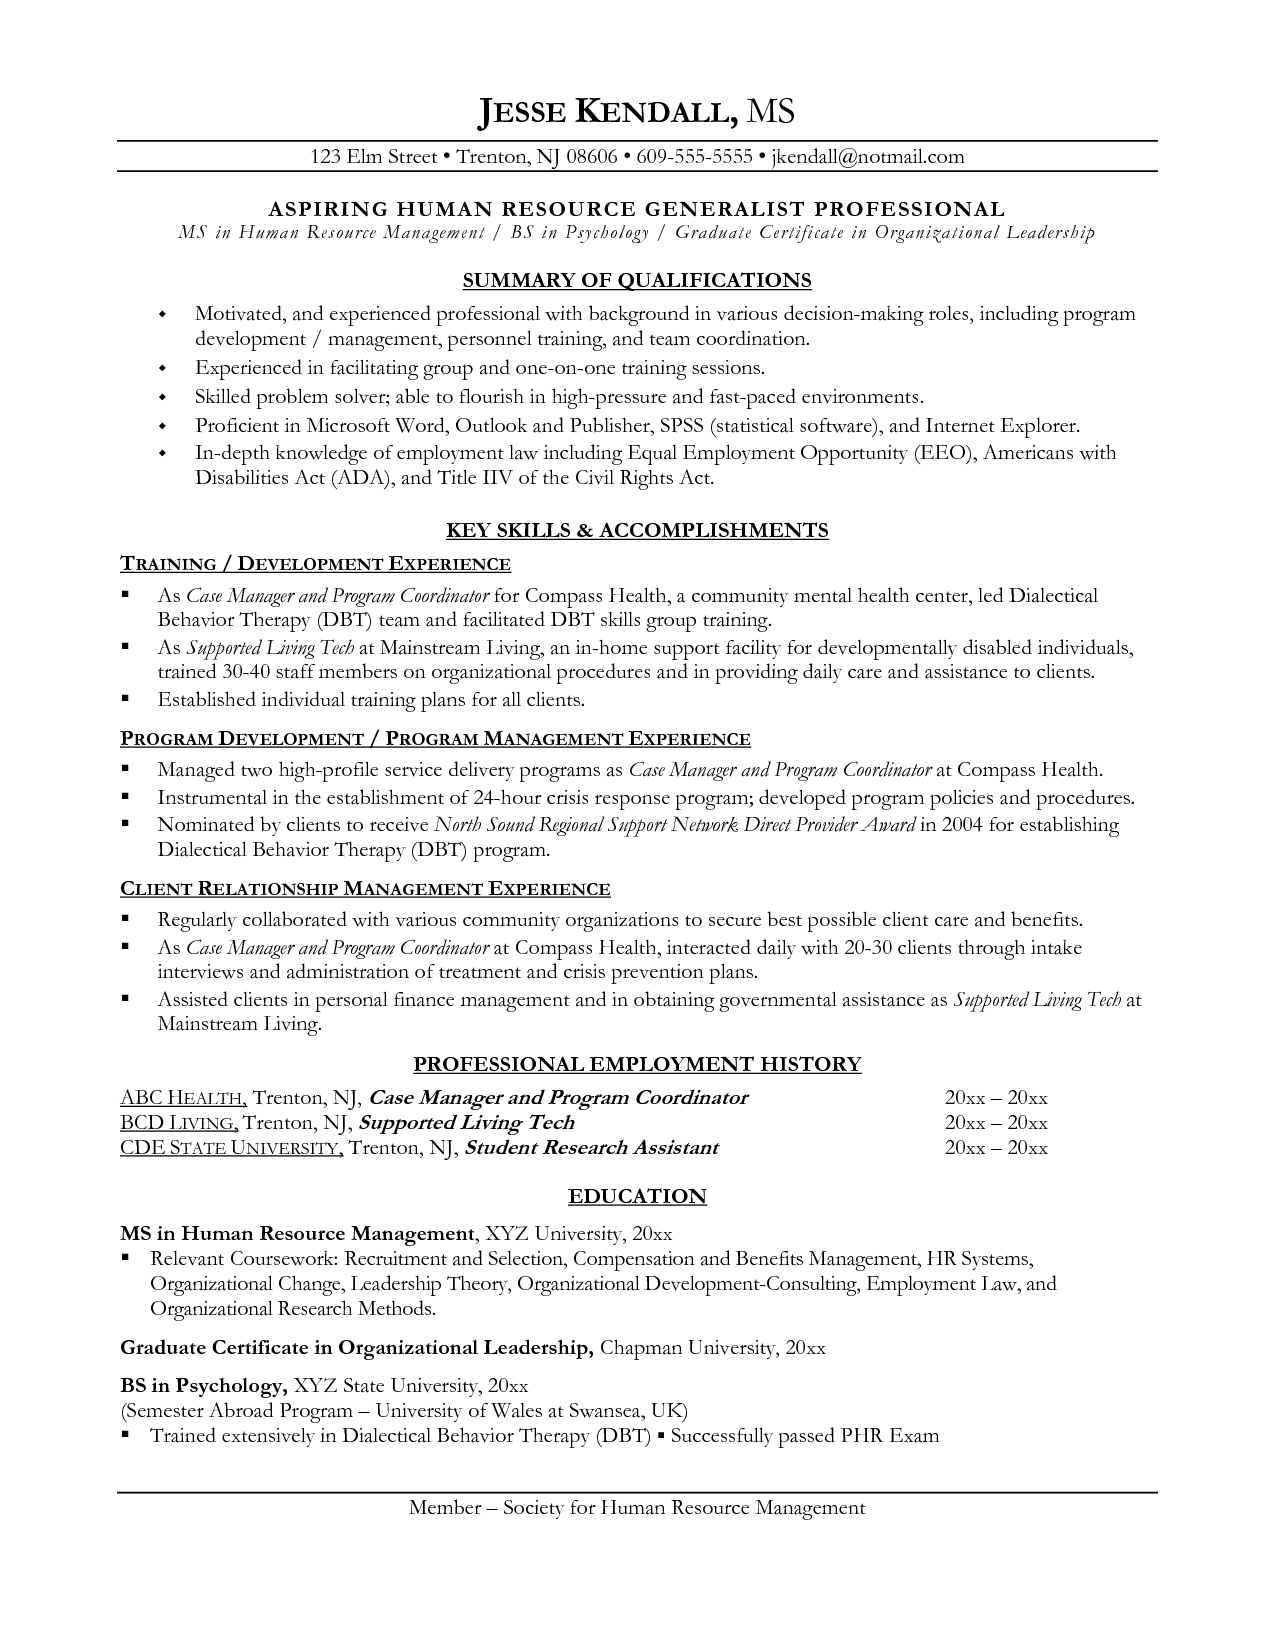 Career Change Resume Examples Samples, Career Change